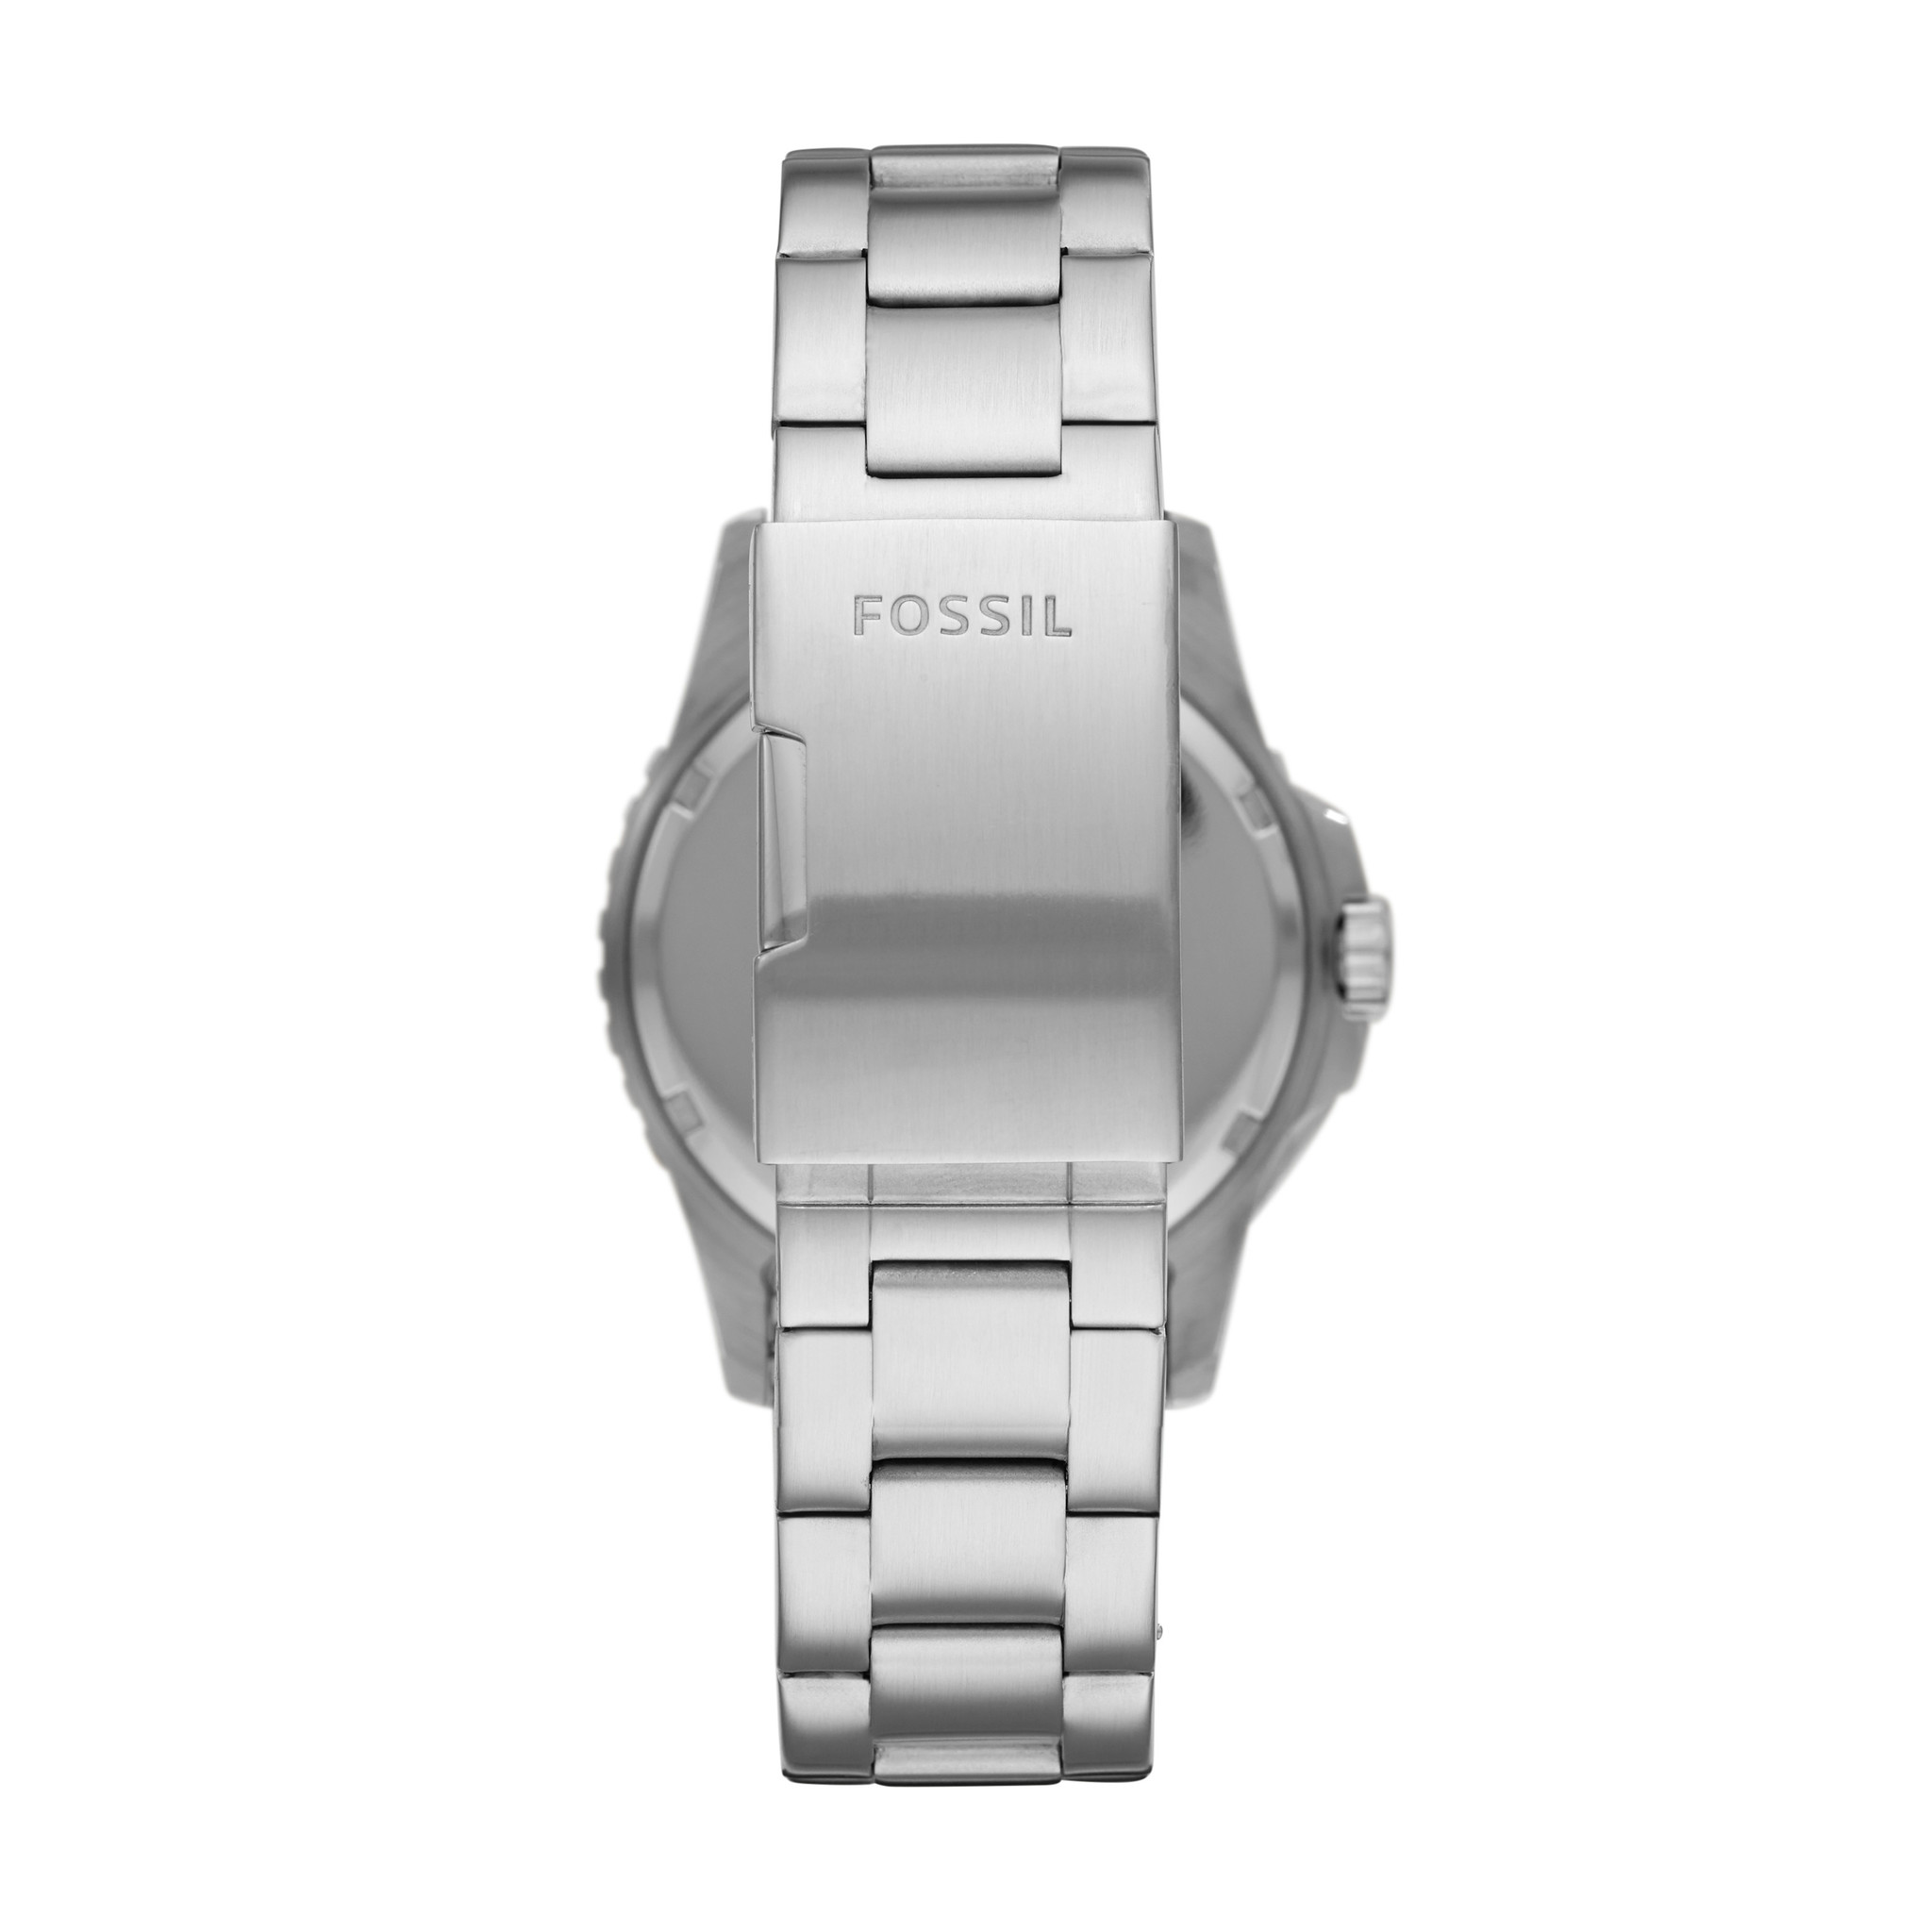 Fossil FB-01 Three-Hand Date Stainless Steel Watch FS5657-2